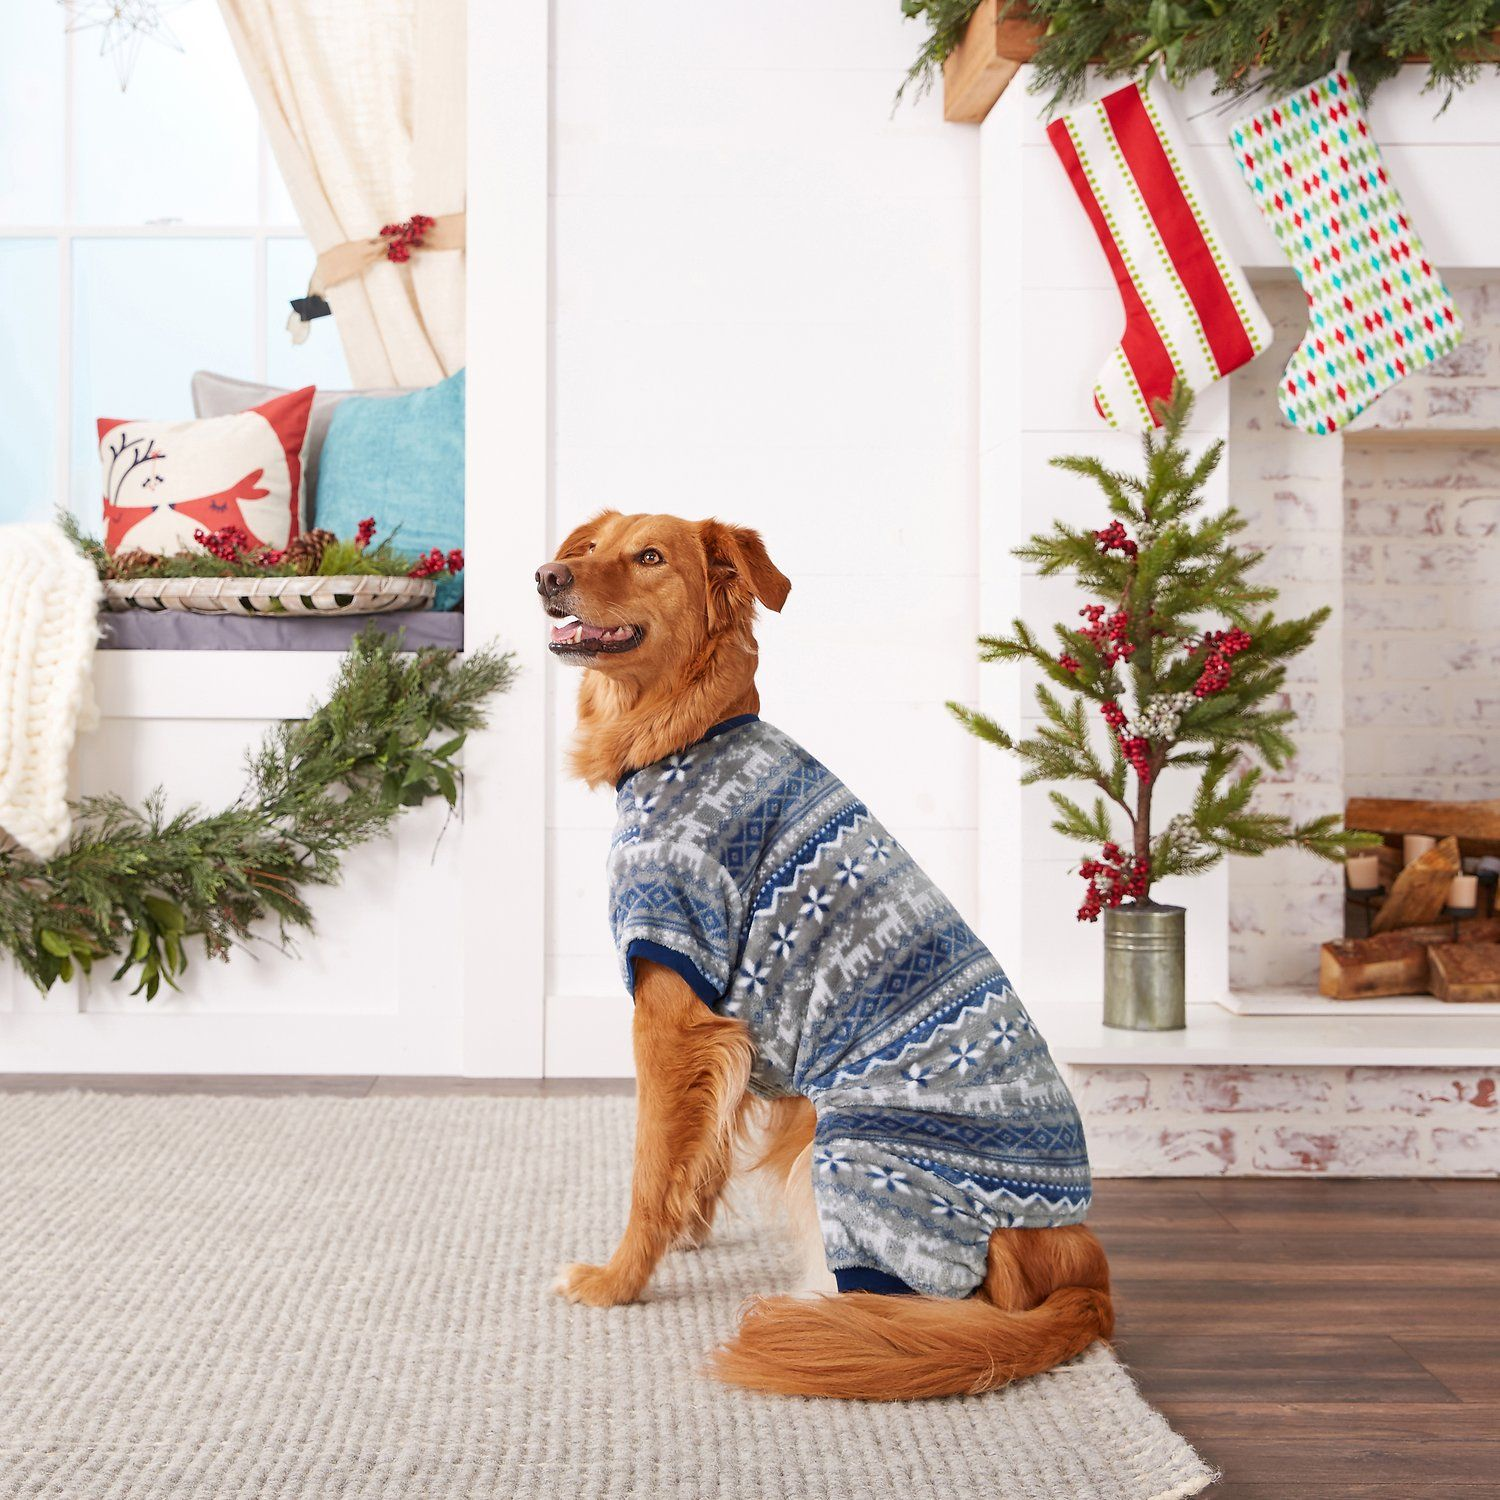 50 Best Gifts for Dog Lovers 2018 - Unique Dog Owner Gift Ideas